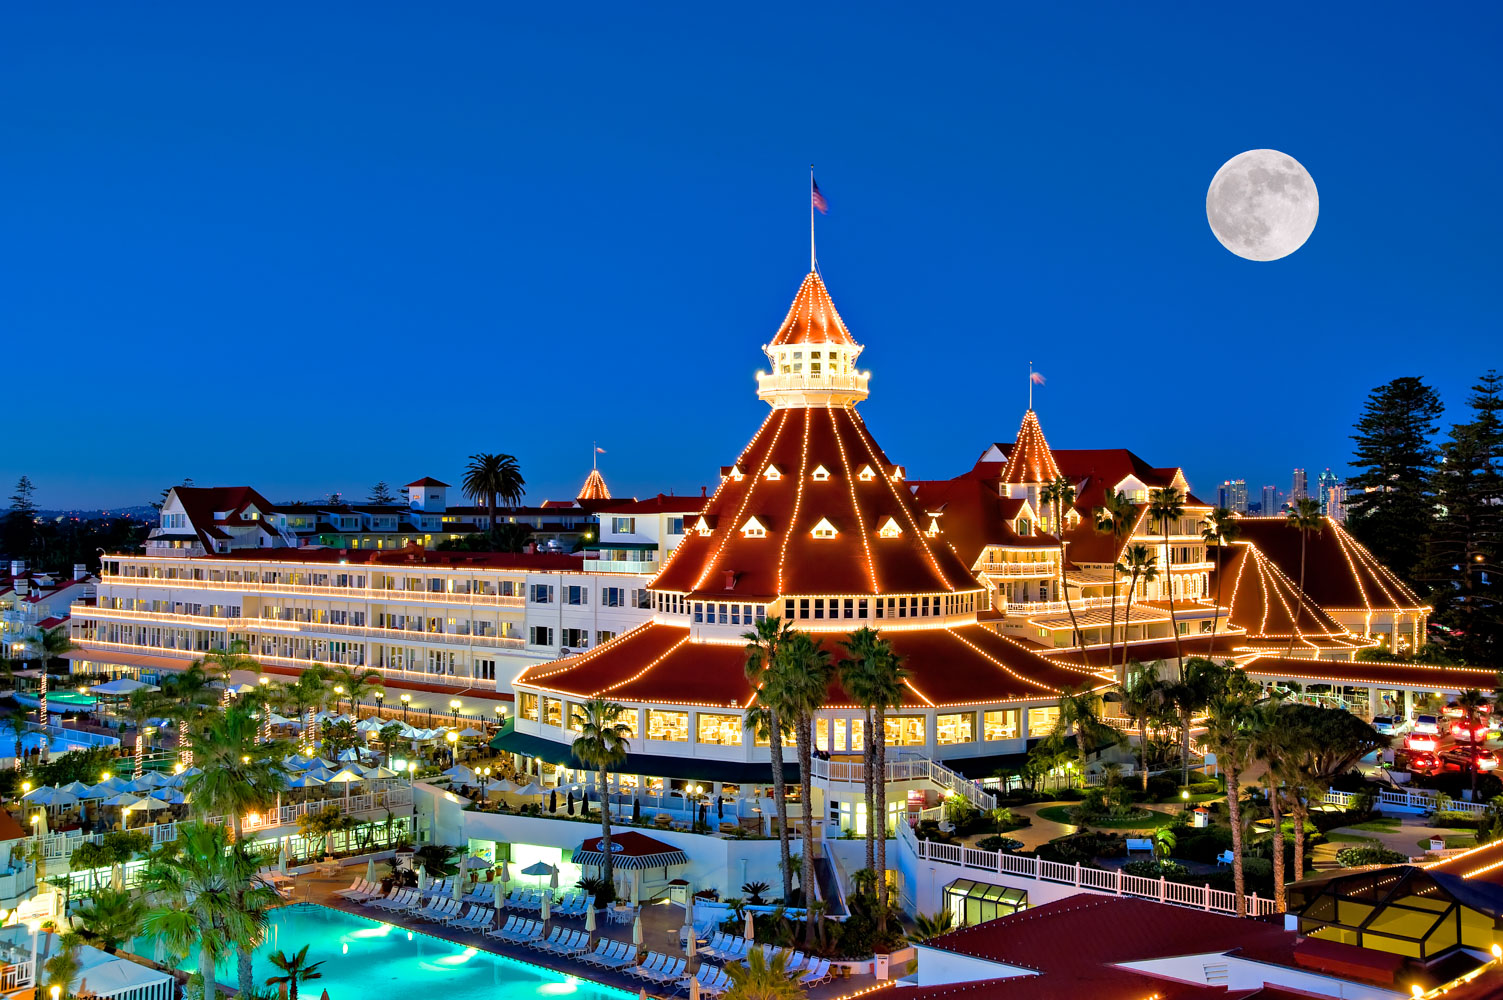 Coronado island - Nestled in the heart of the San Diego Bay,Coronado Islandhas won the hearts of locals and tourists alike for nearly 100 years. This vibrant community offers a rich history combined with a fun-packed list perfect for family-friendly vacation activities.